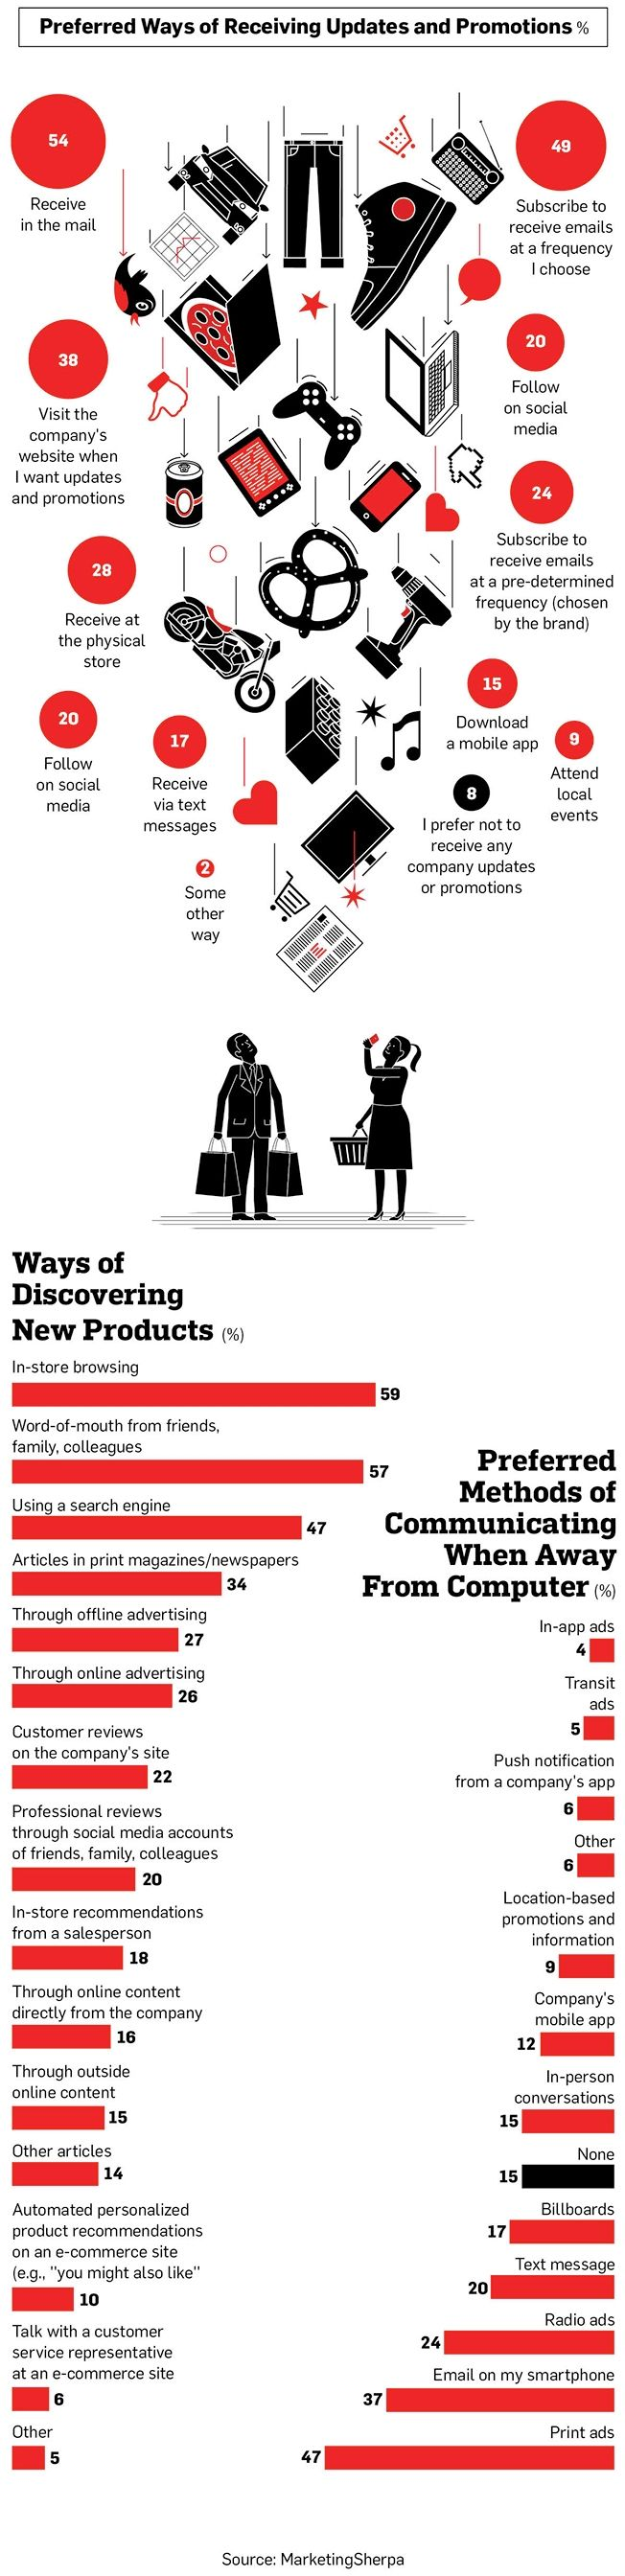 Consumers and their personal preference in Advertising.